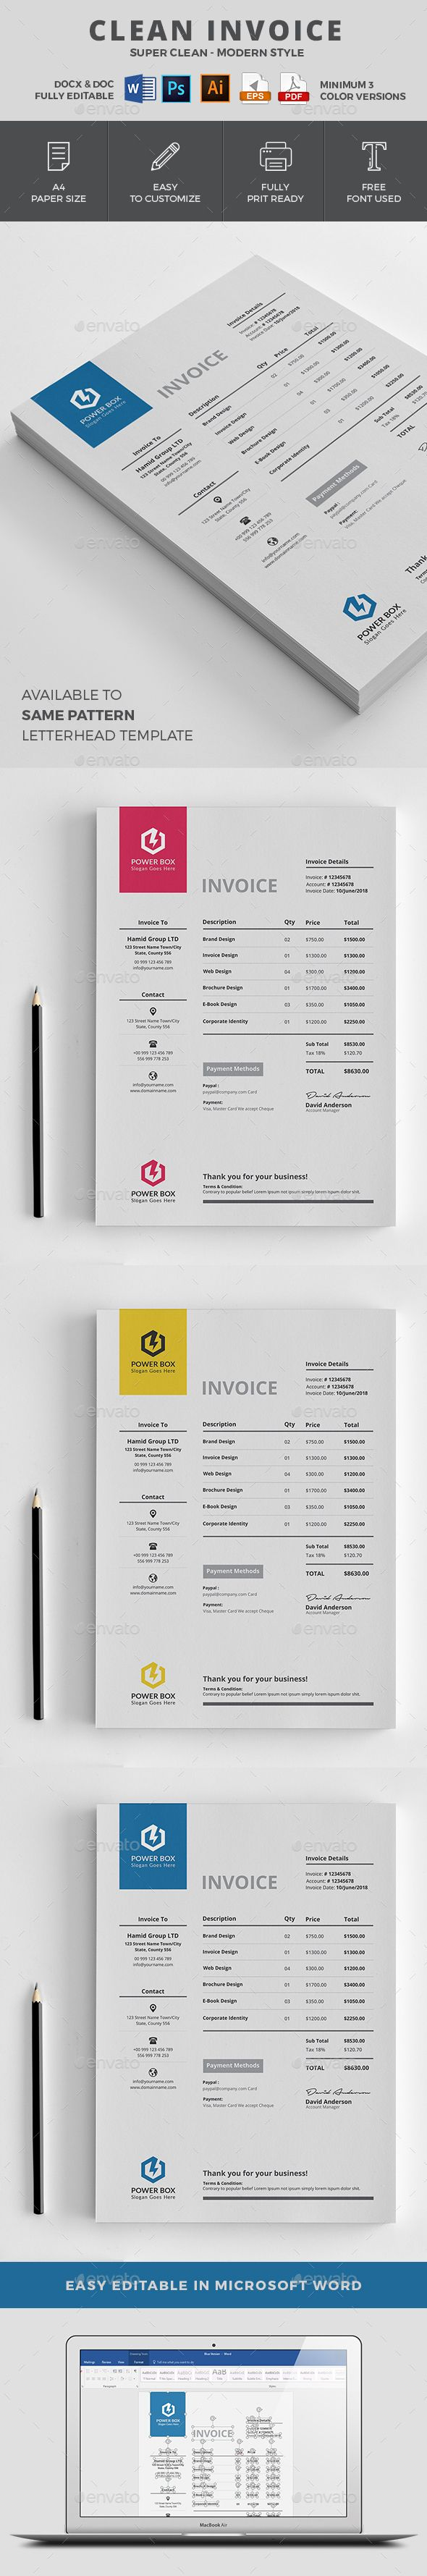 Free Business Invoice Templates Word Inspiration Best 75 Invoice Templates Images On Pinterest  Invoice Design .